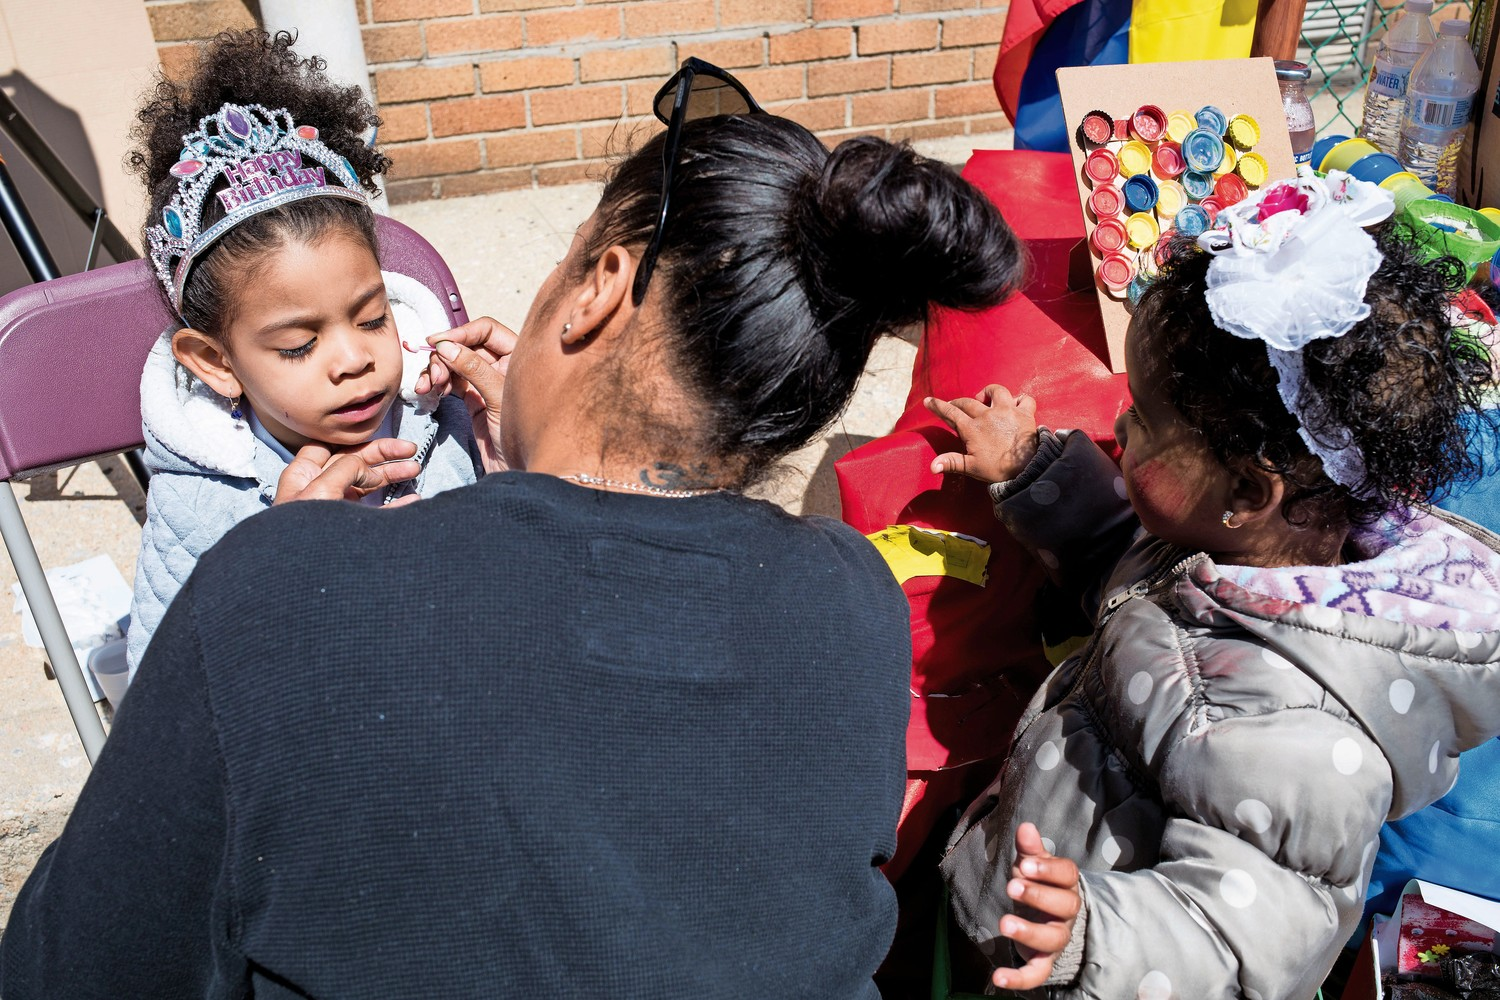 Deborah Ortiz paints Lina Mateo's face while Lina's friend Sherlyn Garcia watches at an Earth Day celebration at the Kingsbridge Heights Community Center's location on West 231st Street.